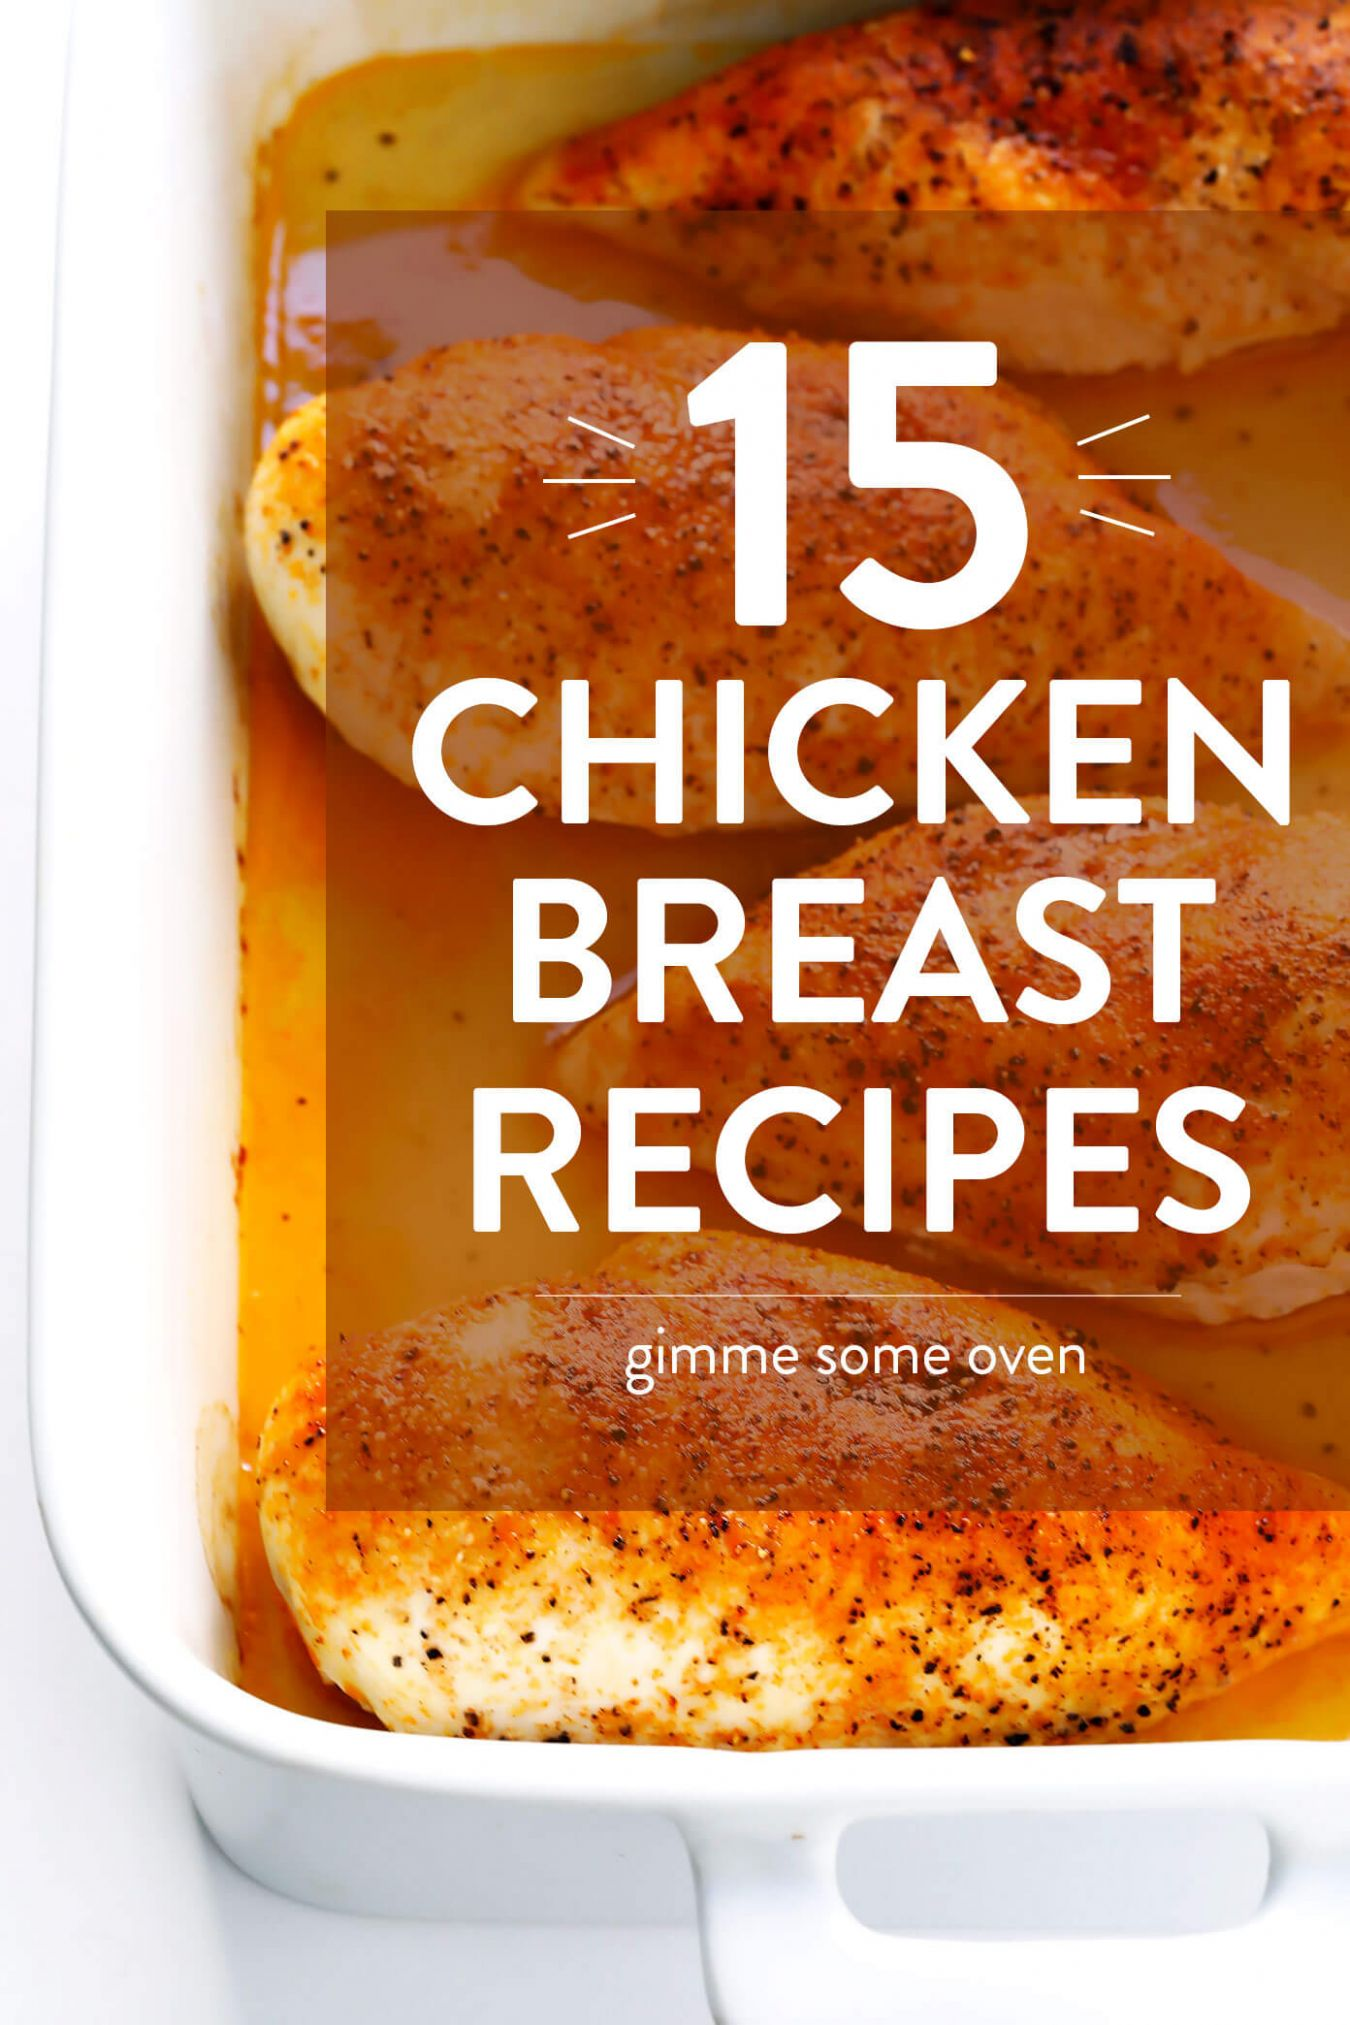 8 Favorite Chicken Breast Recipes | Gimme Some Oven